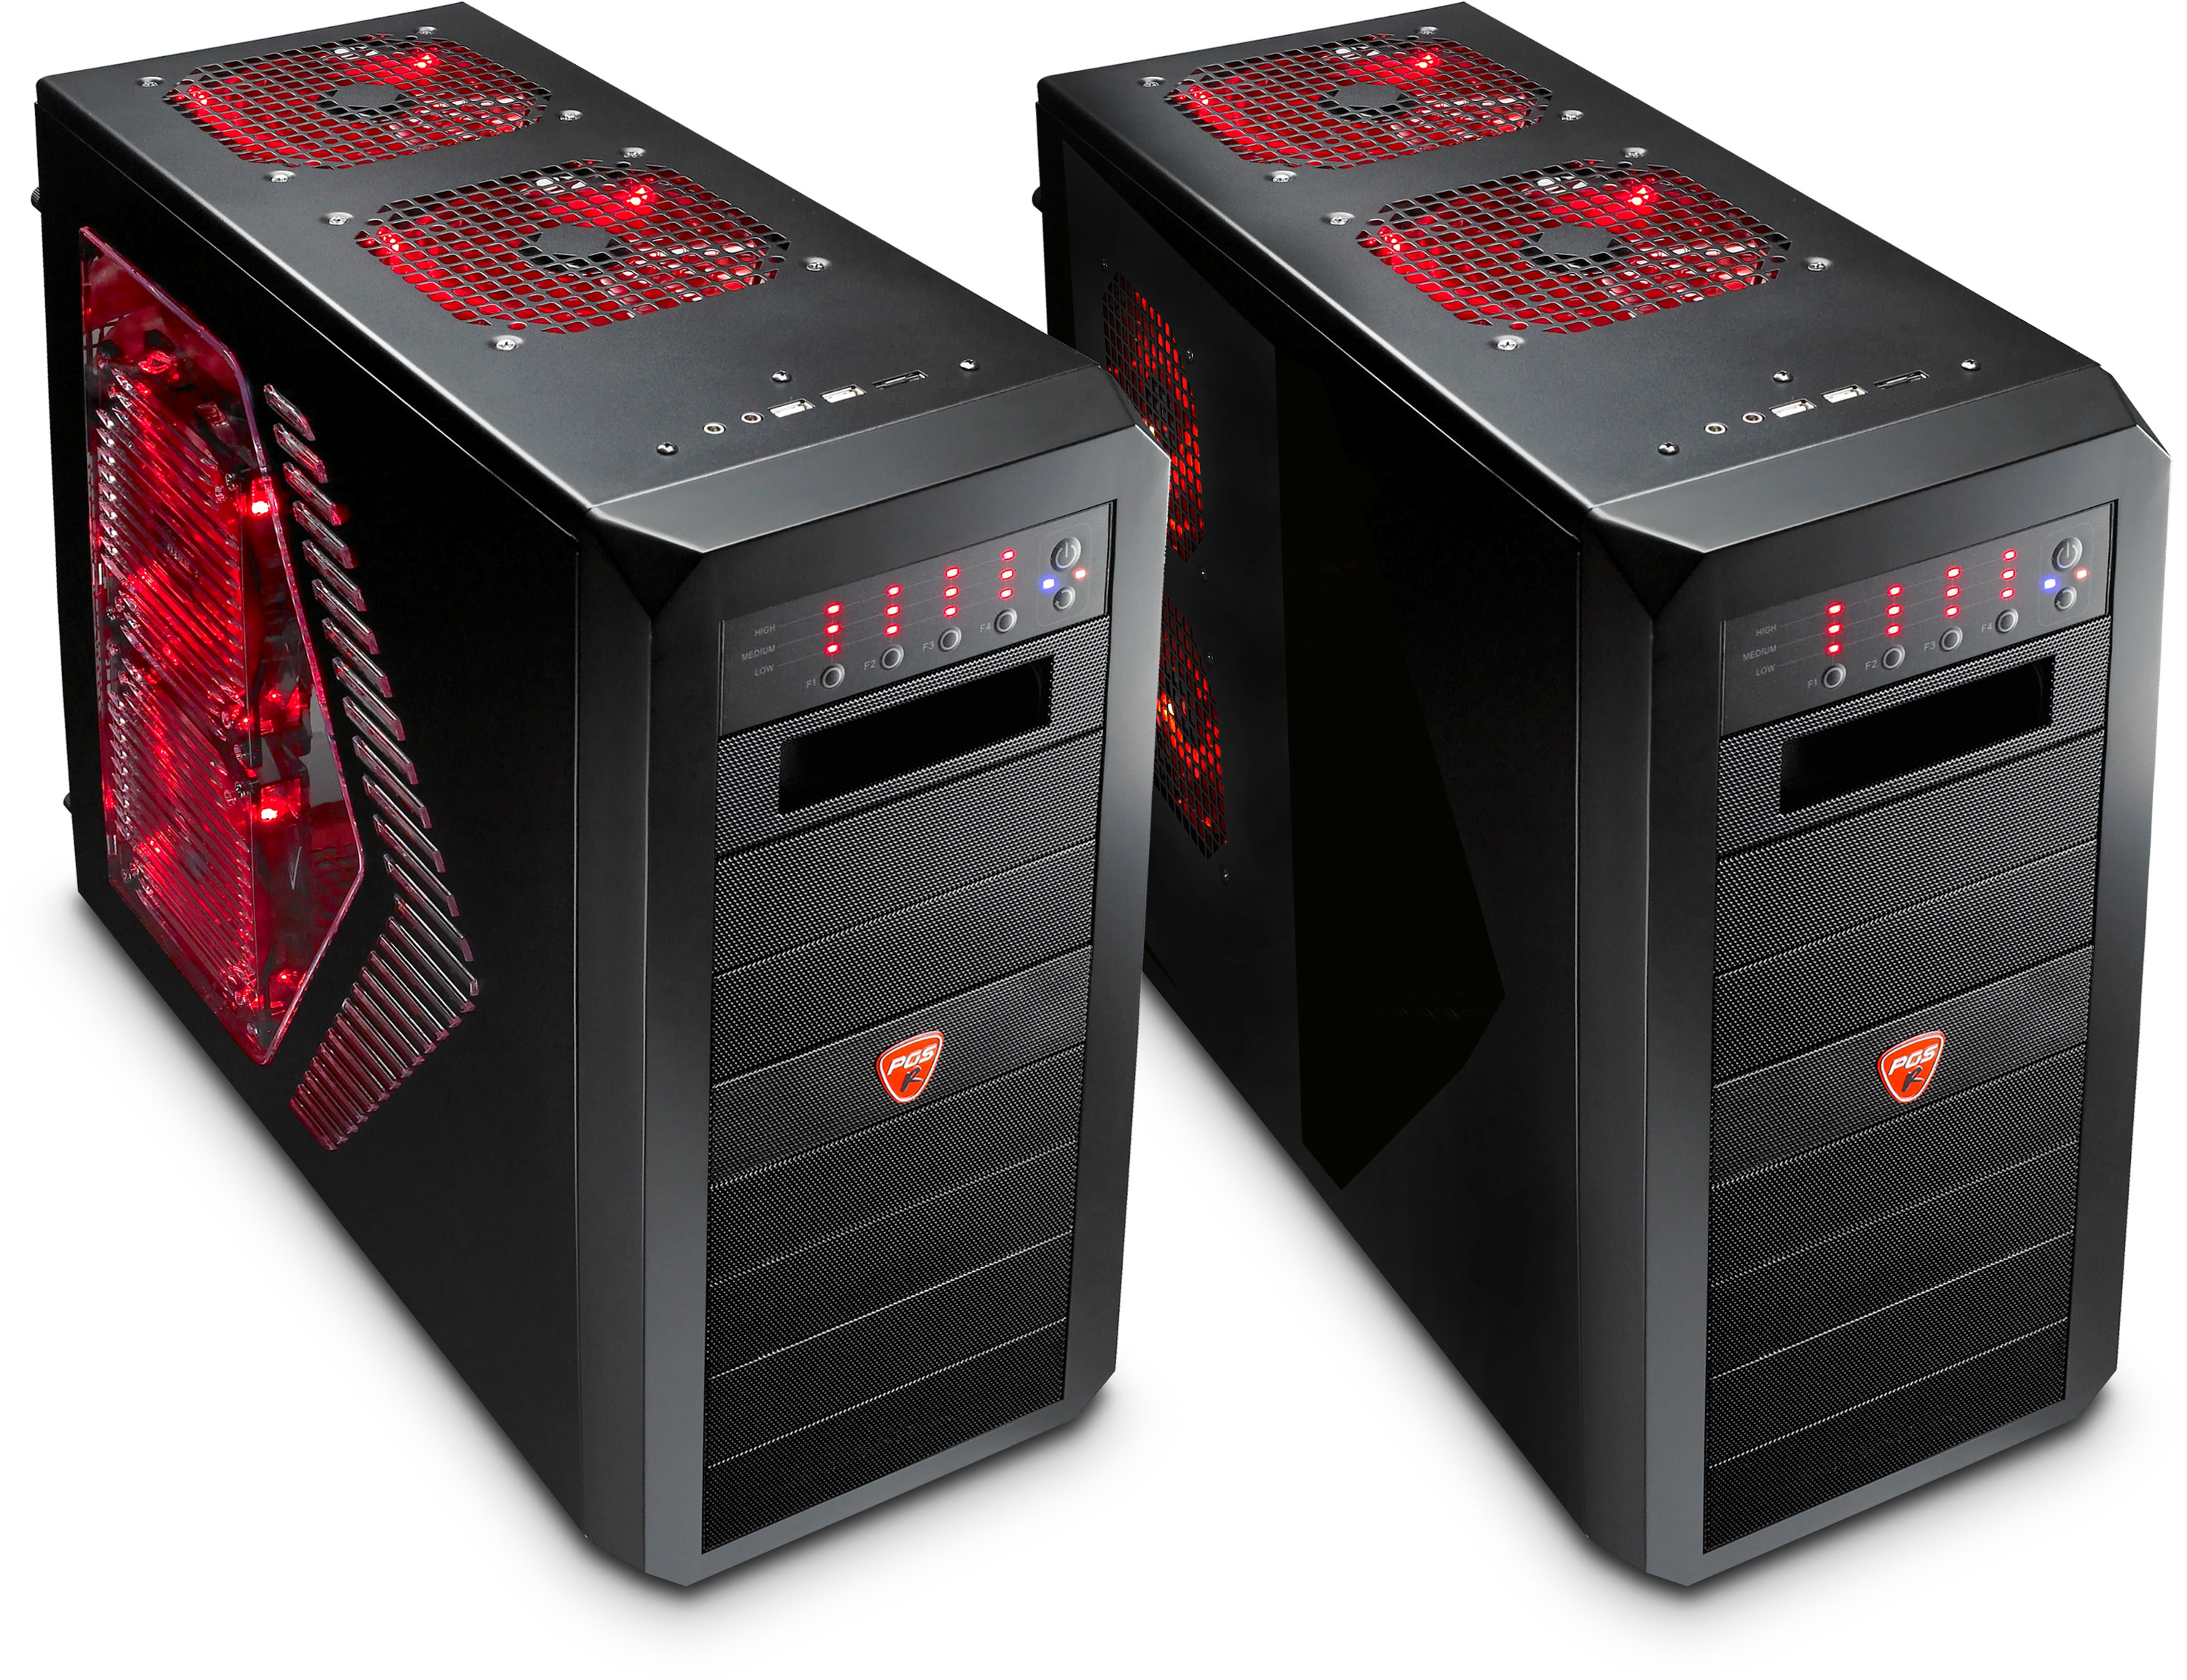 Aerocool Rs 9 Professional Series Computer Cases